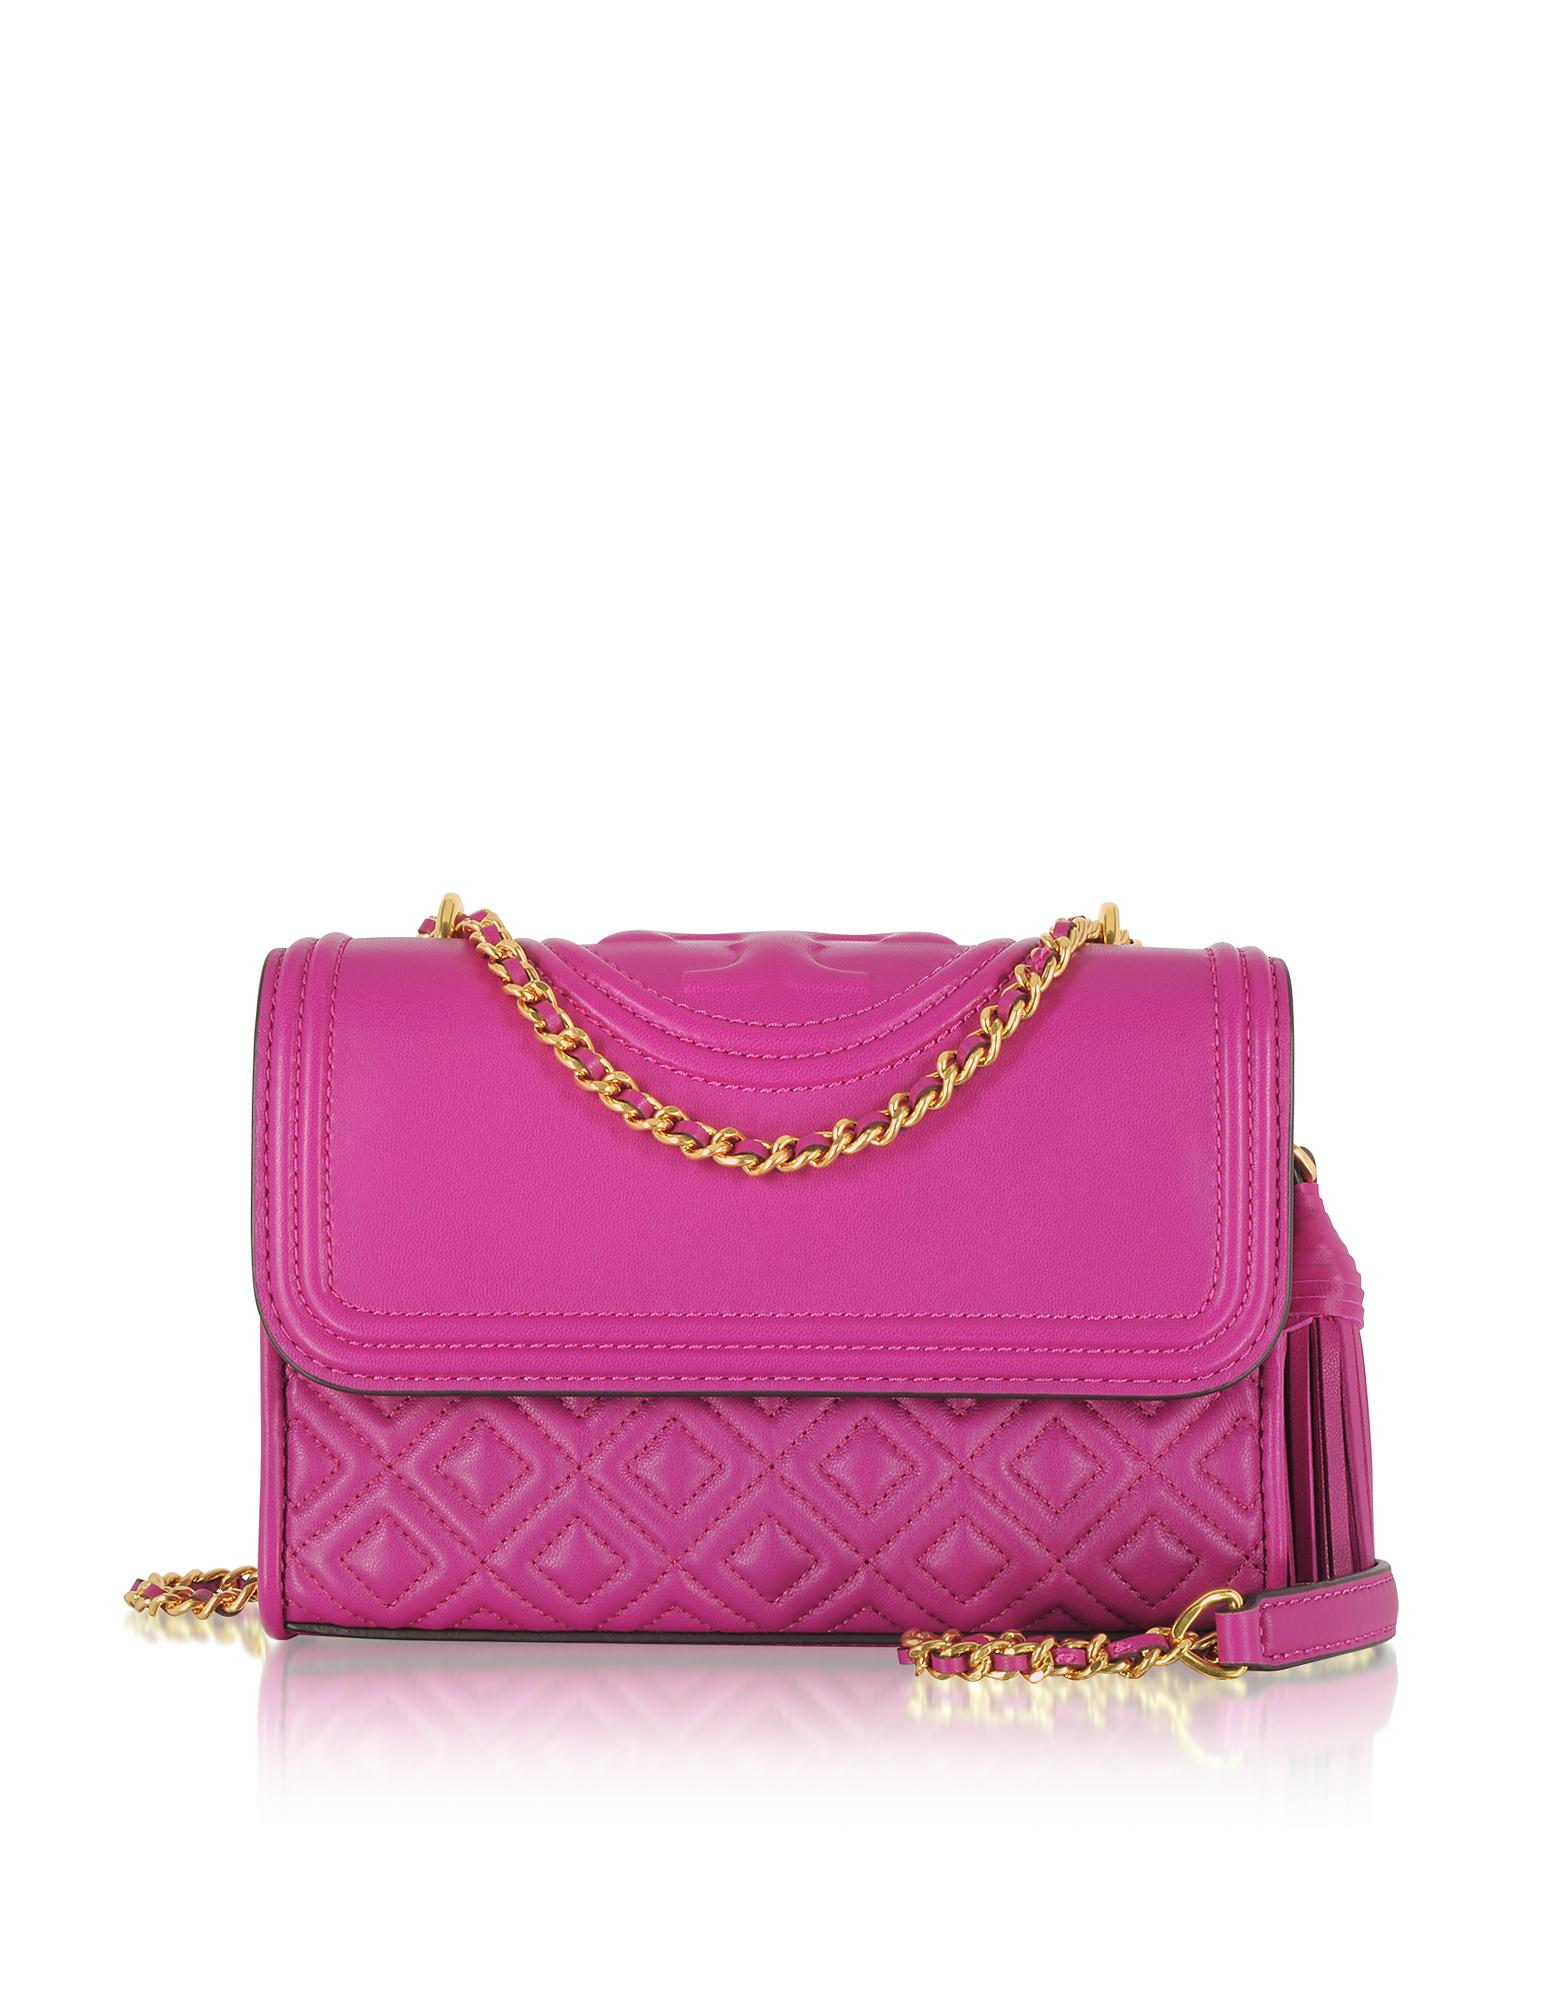 6015481d1f40 Tory Burch Fleming Party Fuchsia Leather Small Convertible Shoulder ...